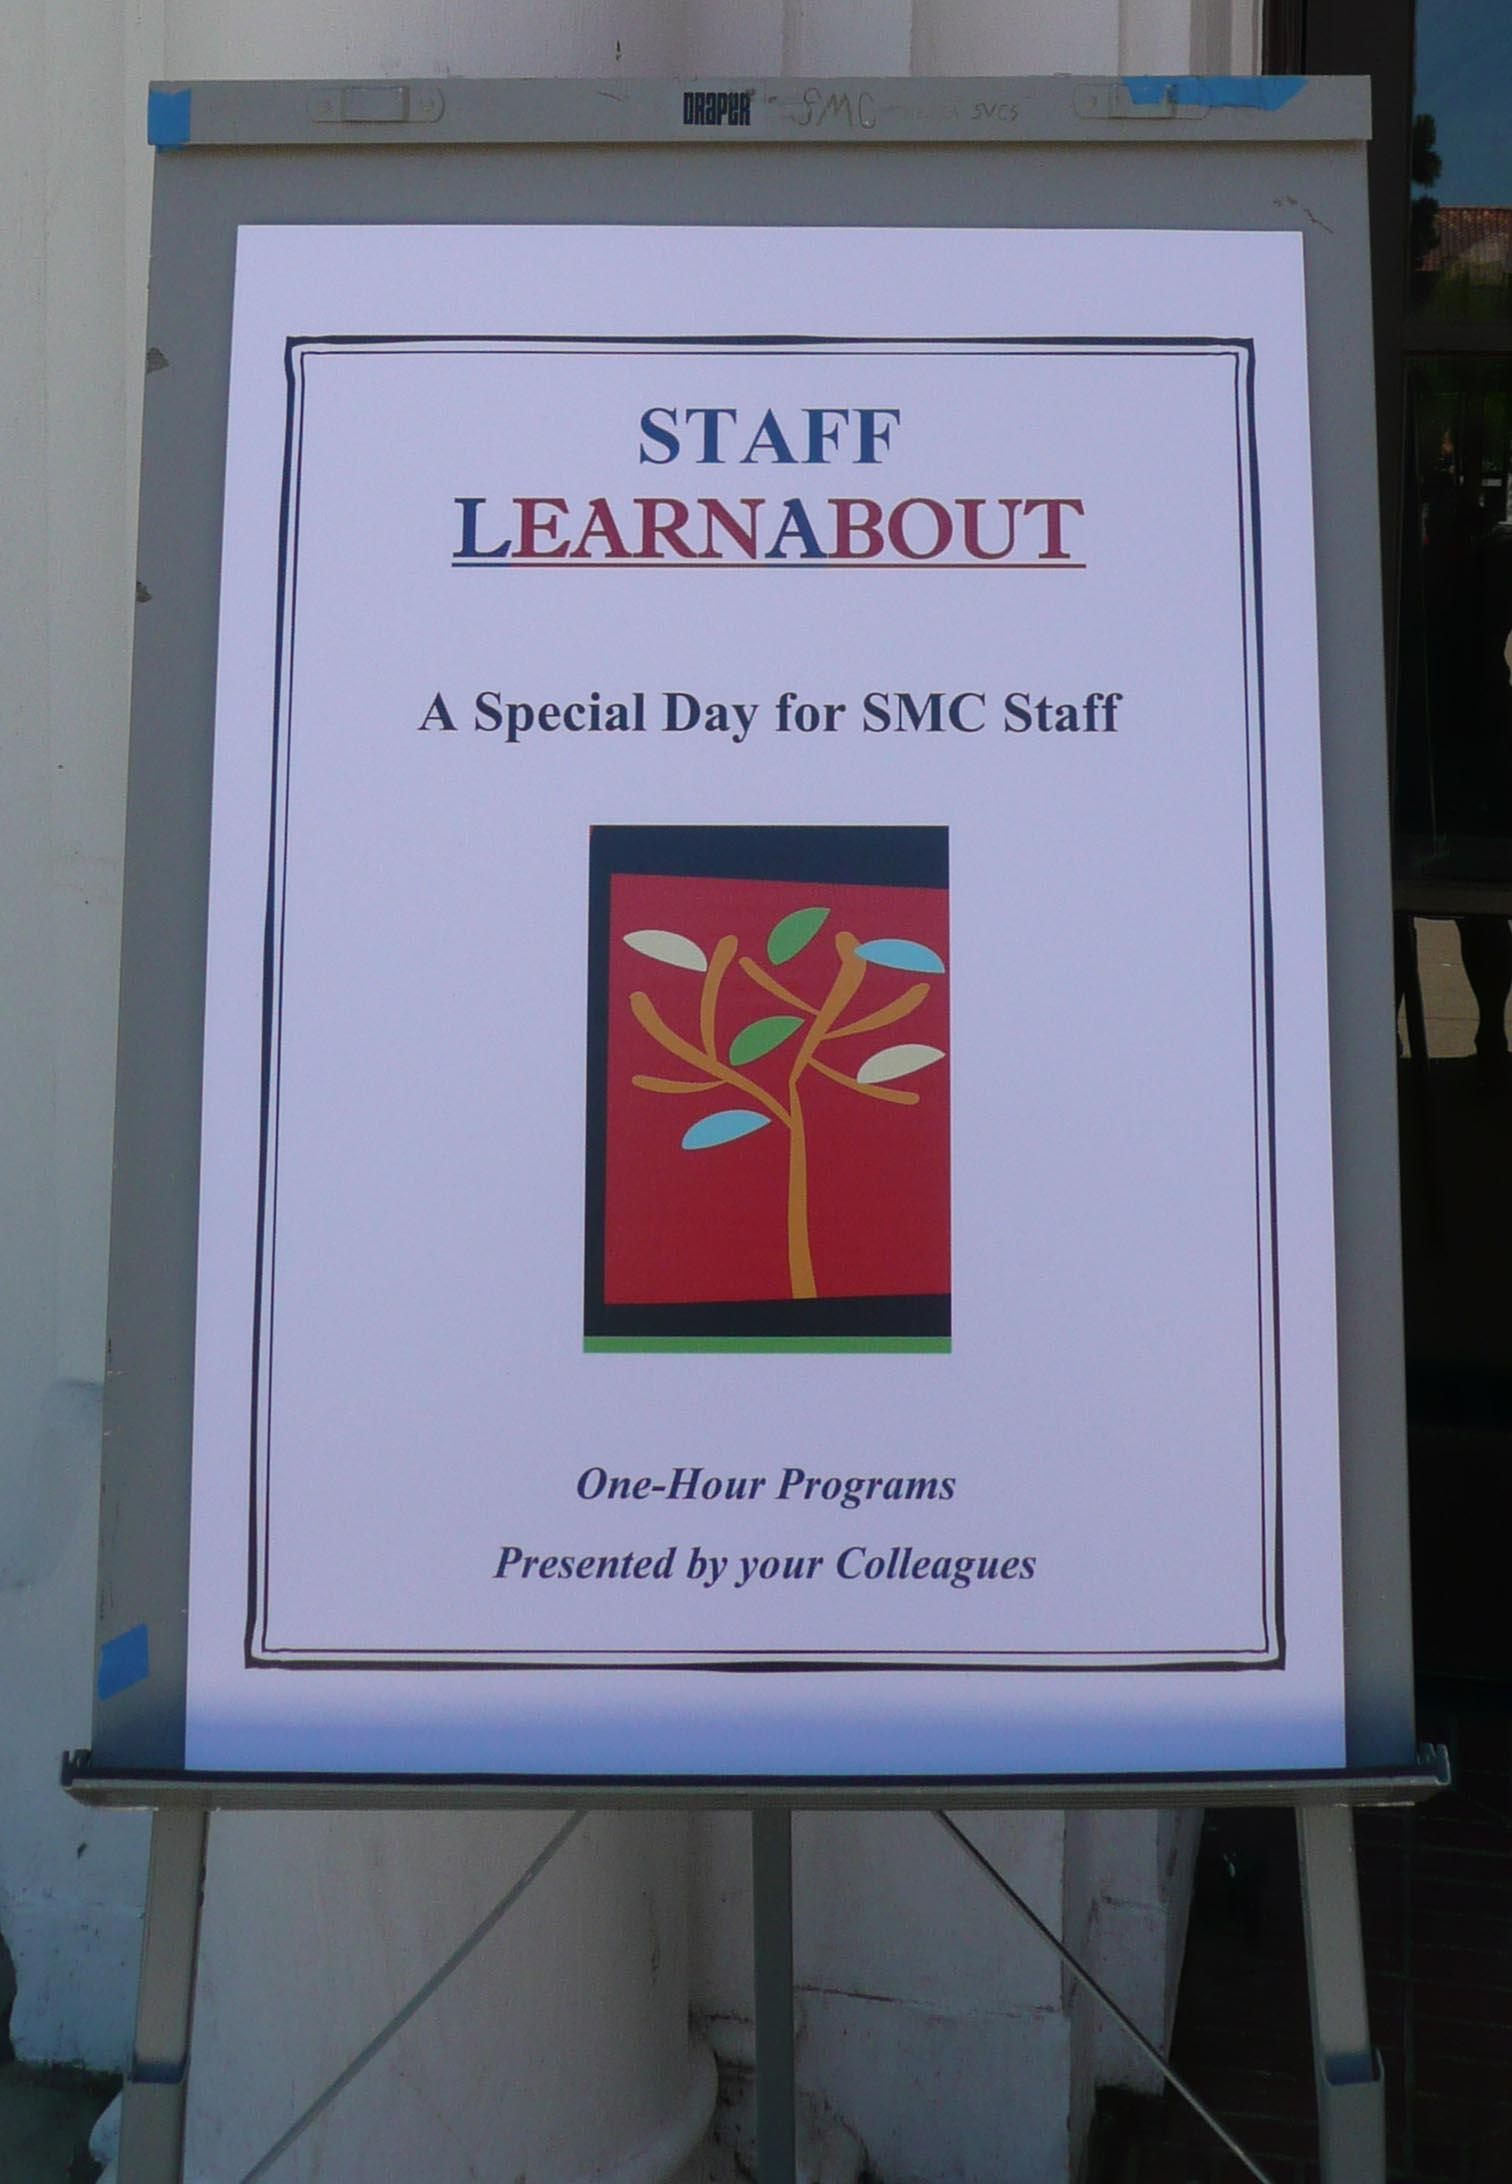 LearnAbout offered a daylong schedule of workshops by staff and for staff.